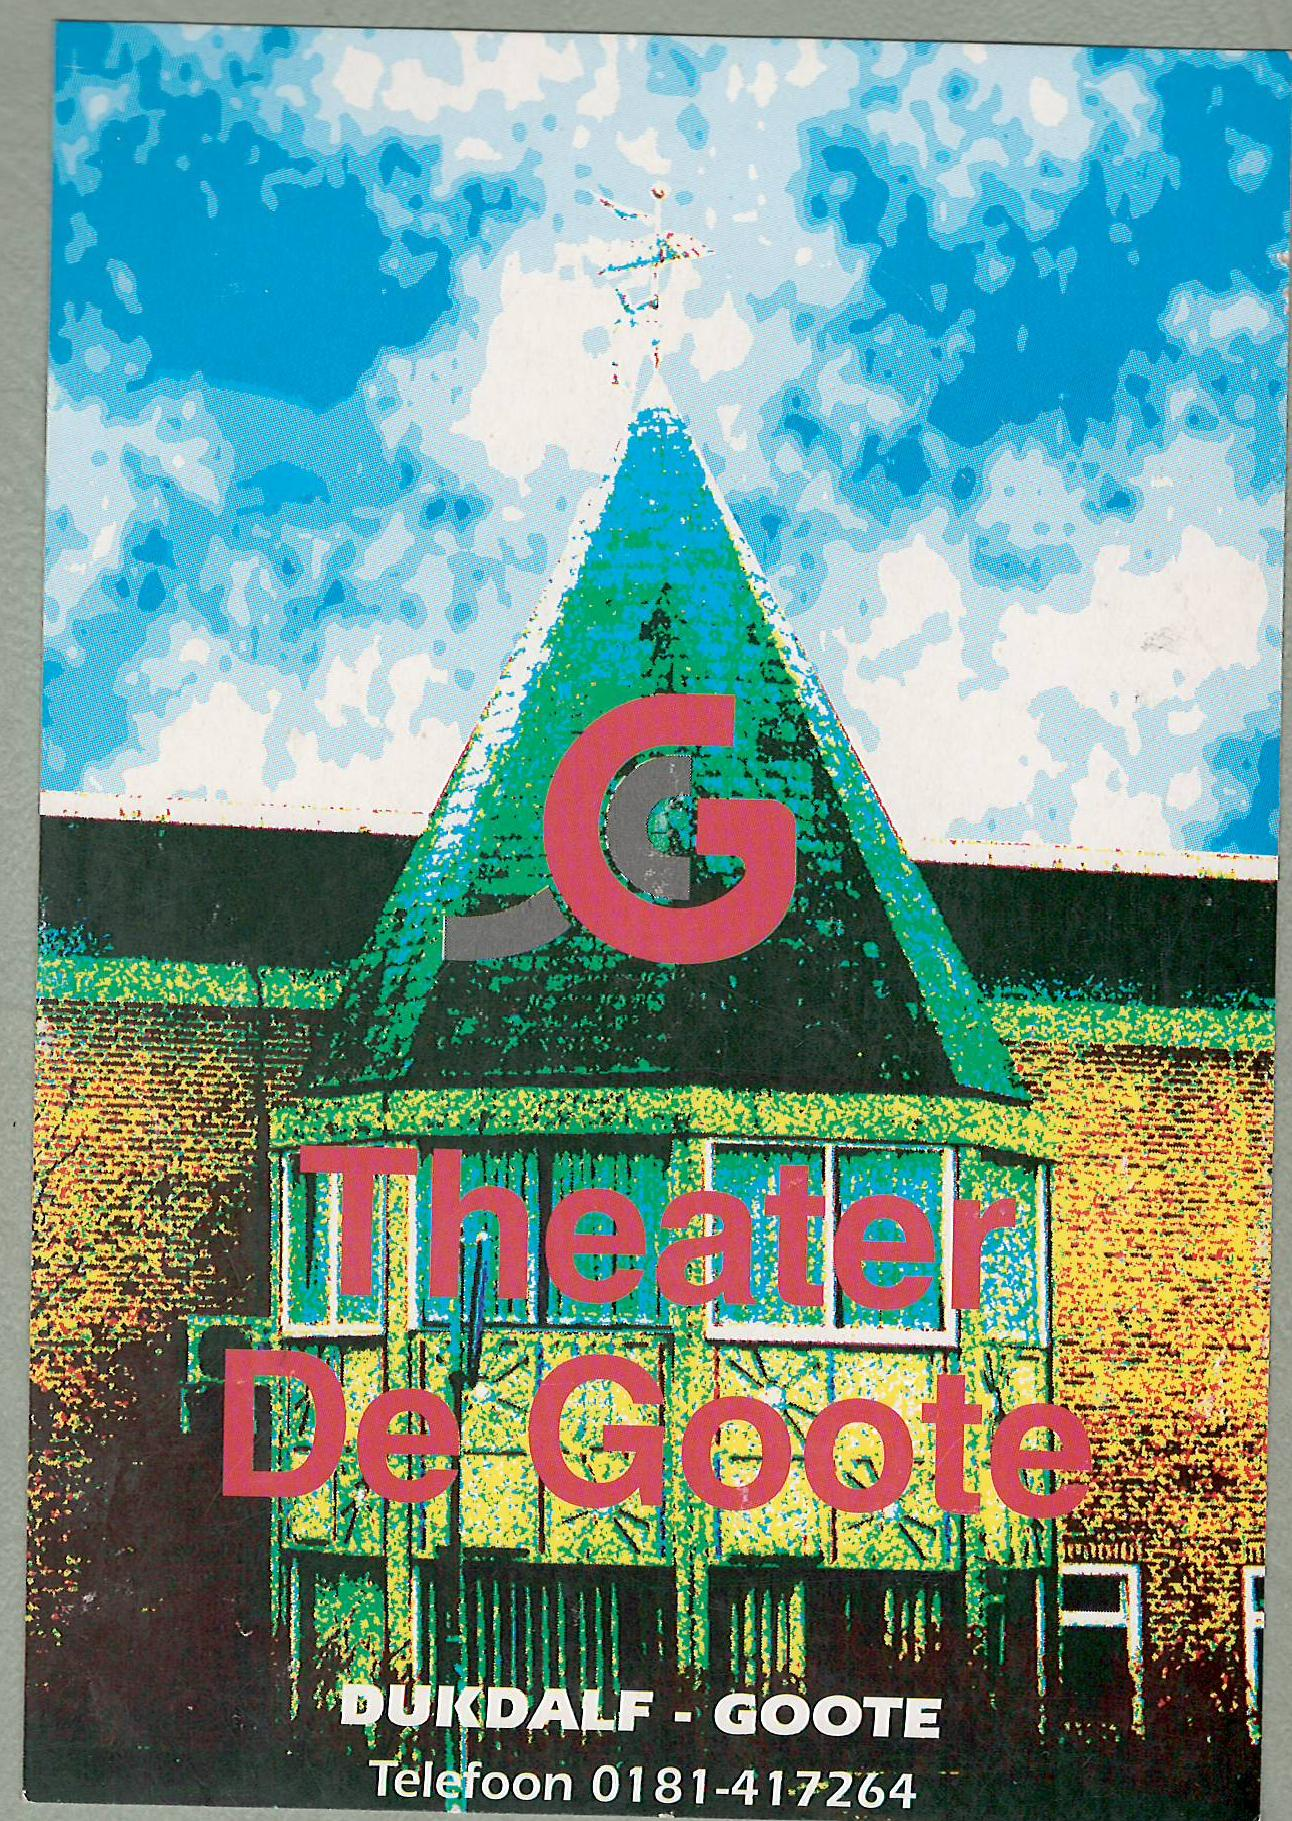 Theater de Goote